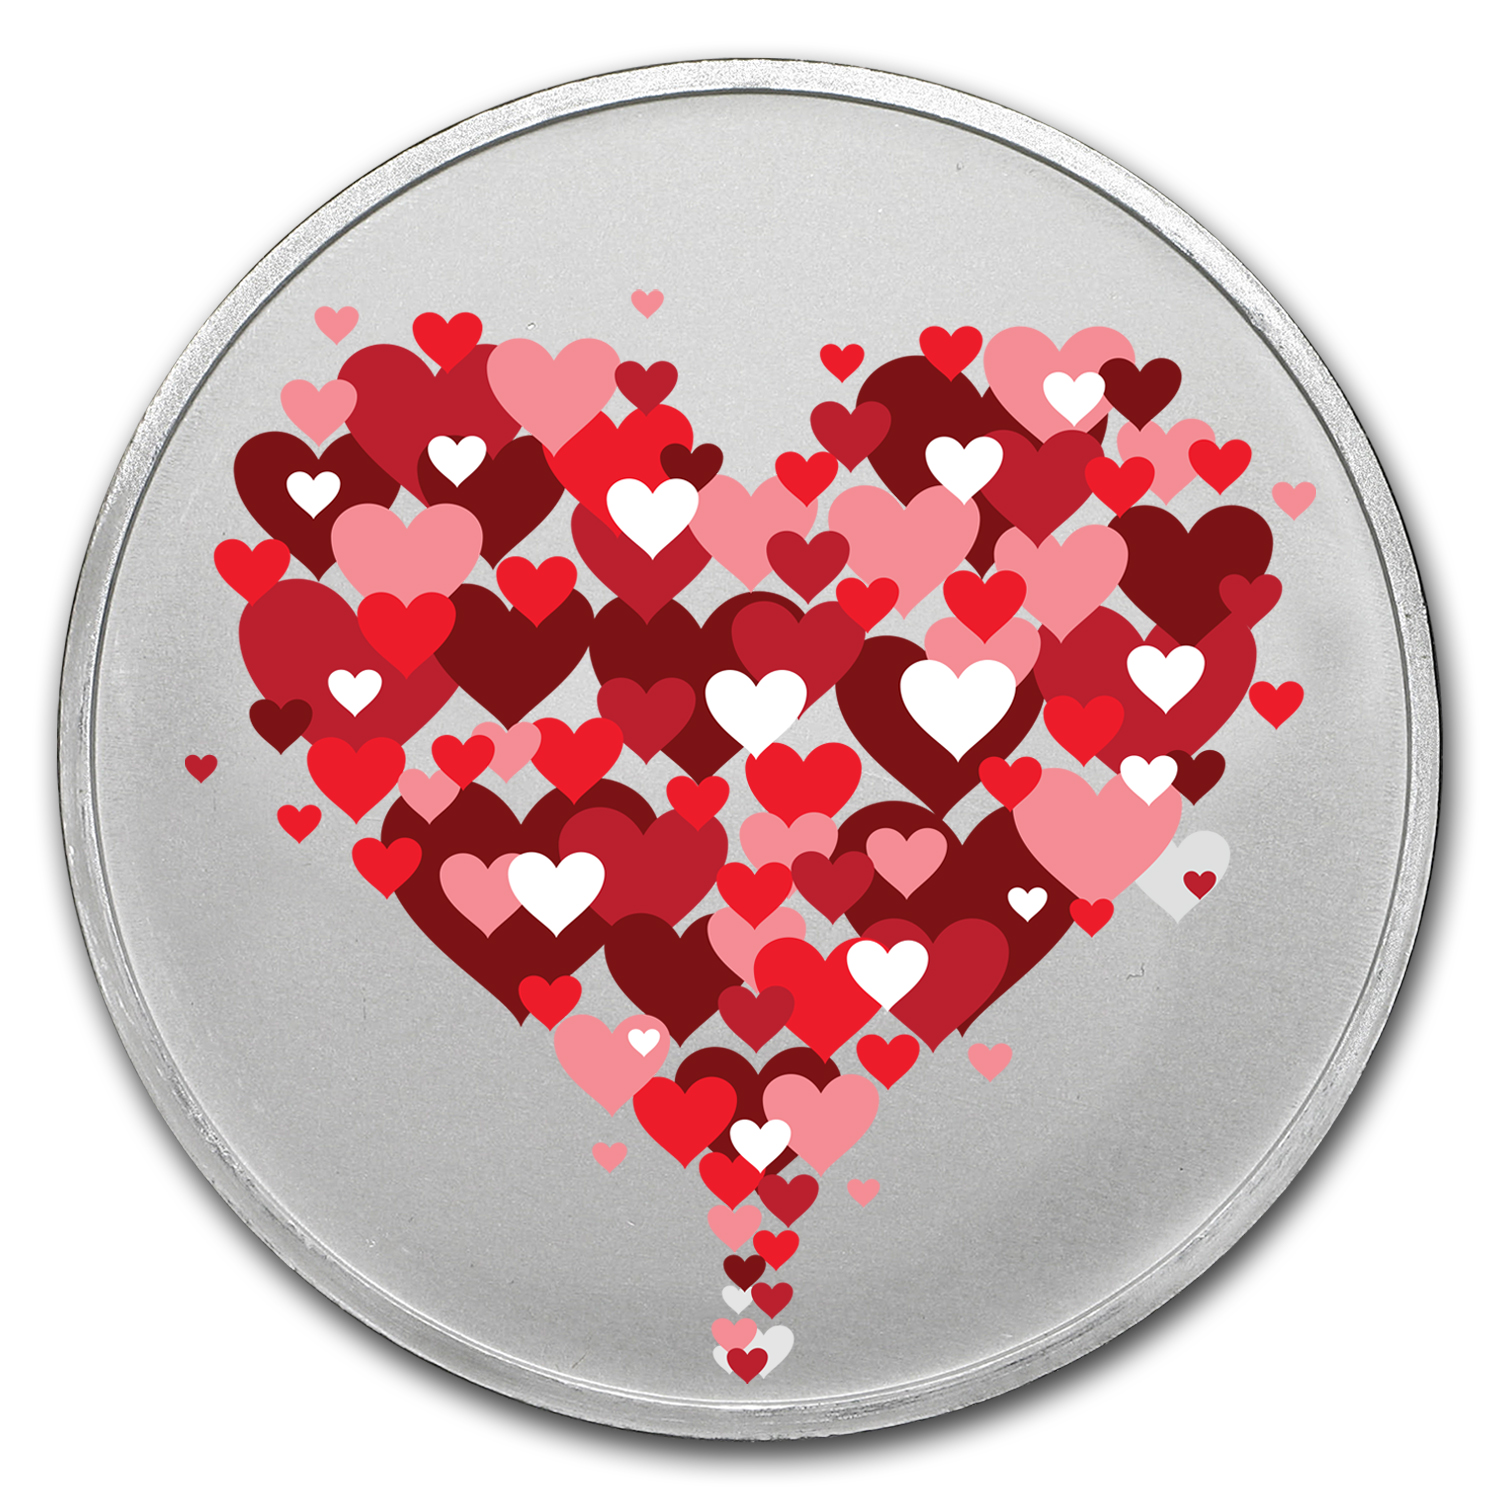 1 oz Silver Colorized Round - APMEX (Hearts Rising)